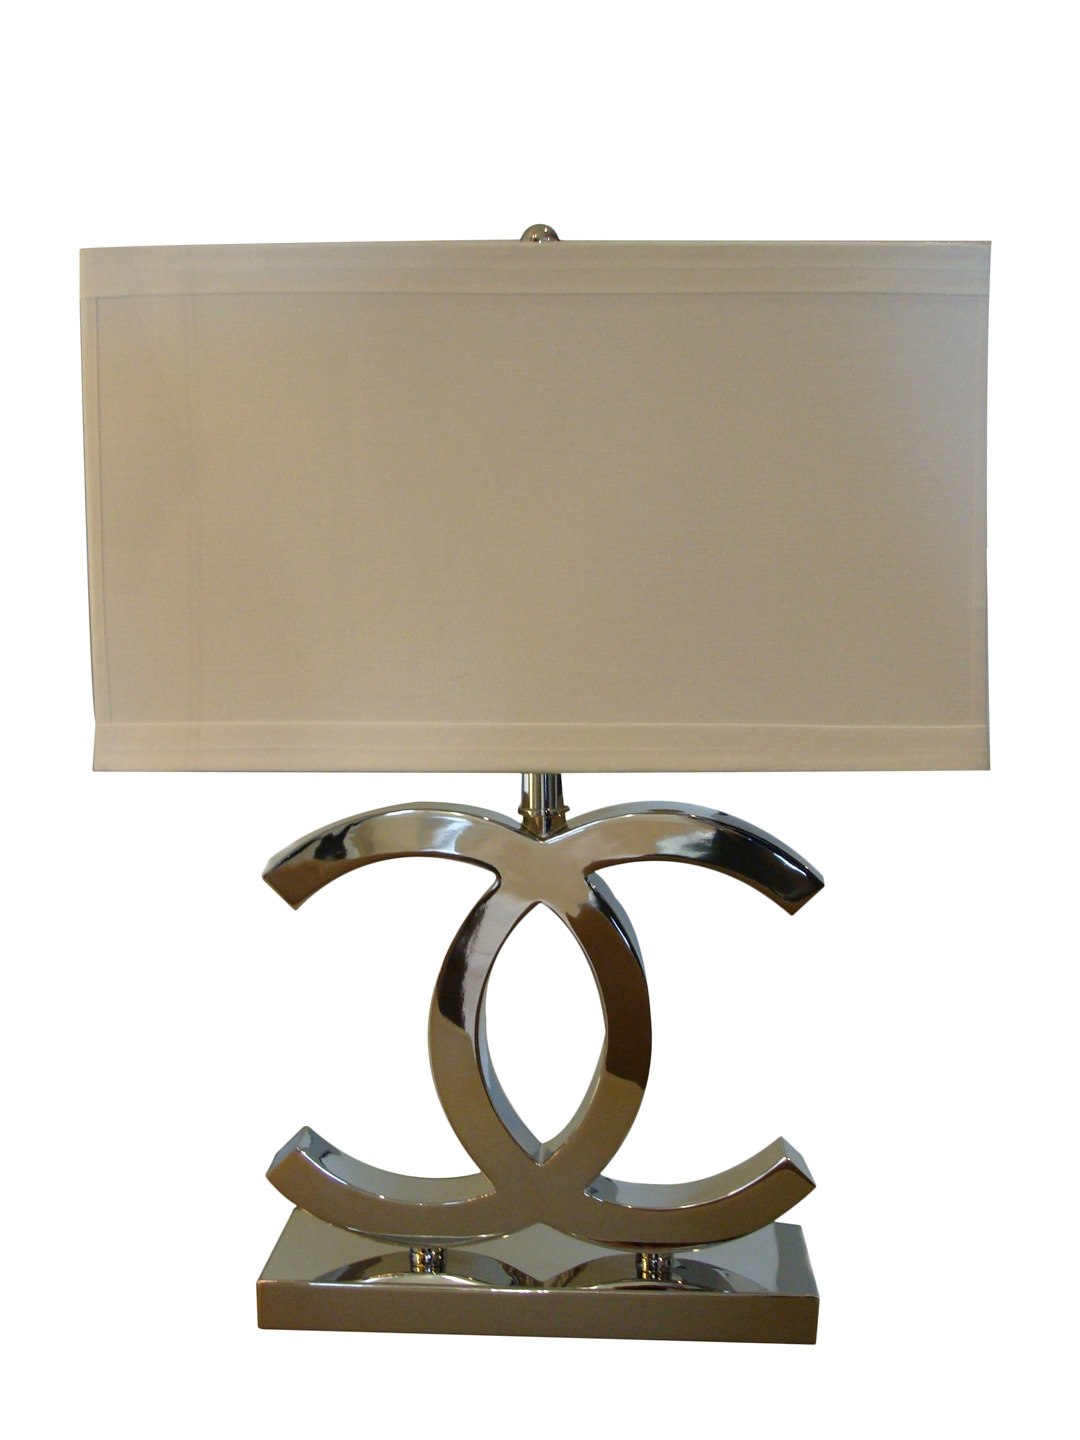 Cc lamp by interior illusions at gilt